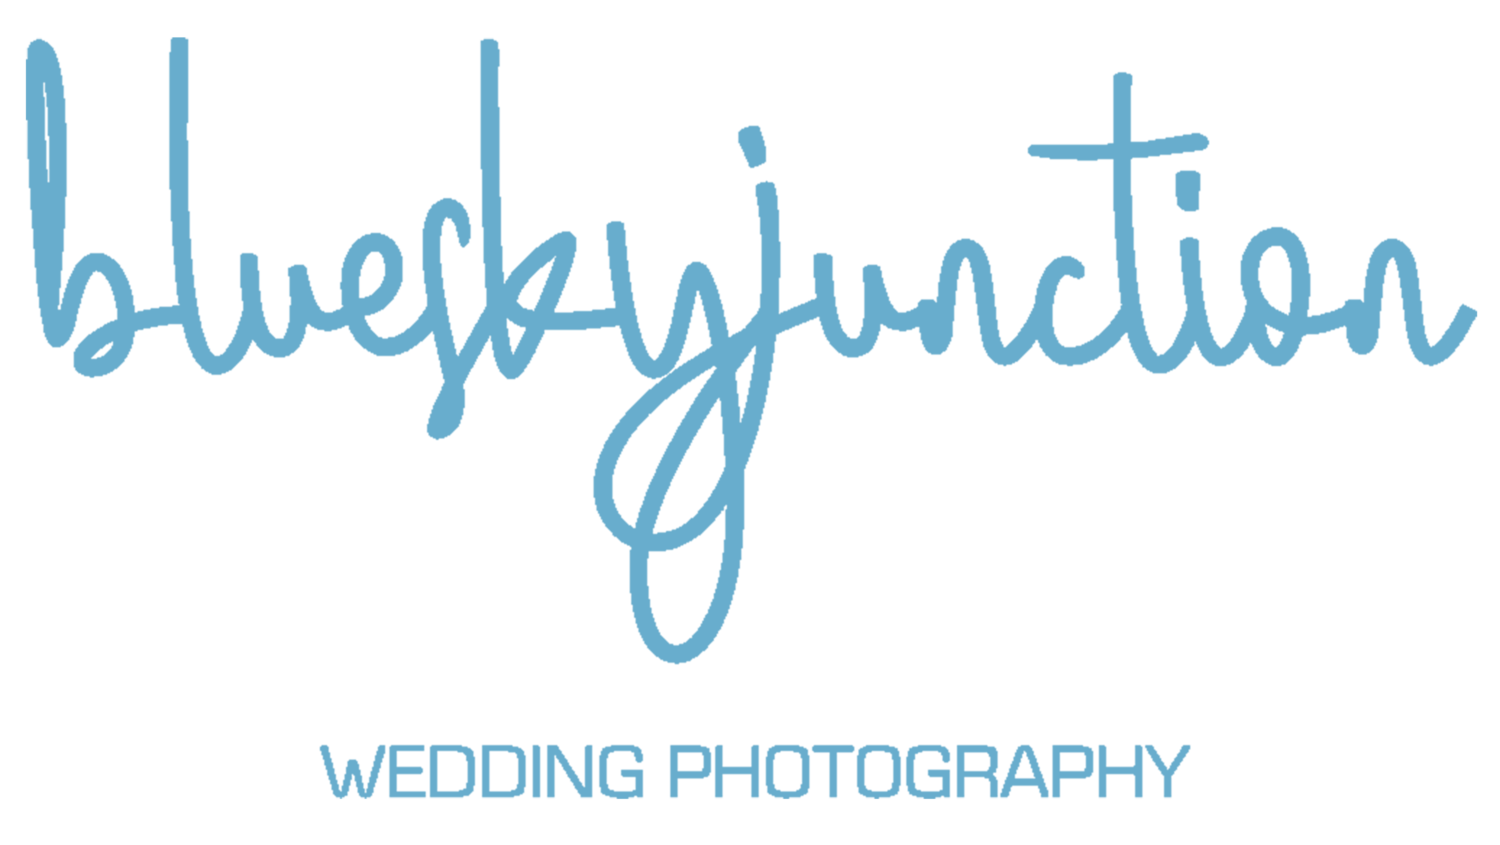 blueskyjunction wedding photography - Natural & Relaxed Documentary Photographer - Anglesey, North Wales